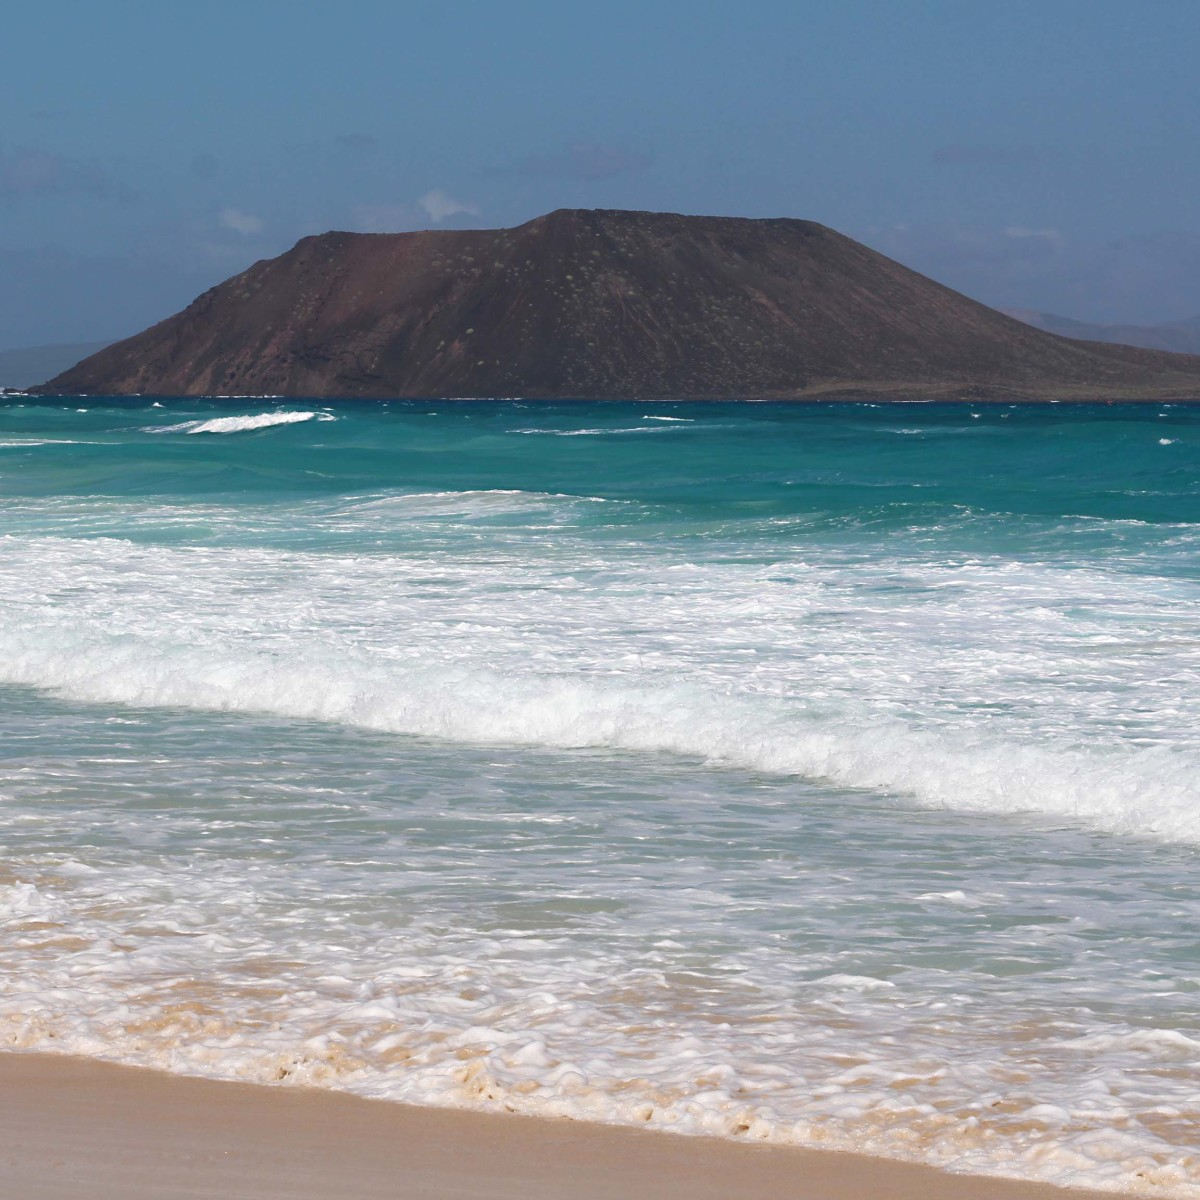 This is Isla de Lobos, a small undeveloped island and nature reserve off the northeast coast of Fuerteventura near Correlejo. It can be visited by boat on a day trip